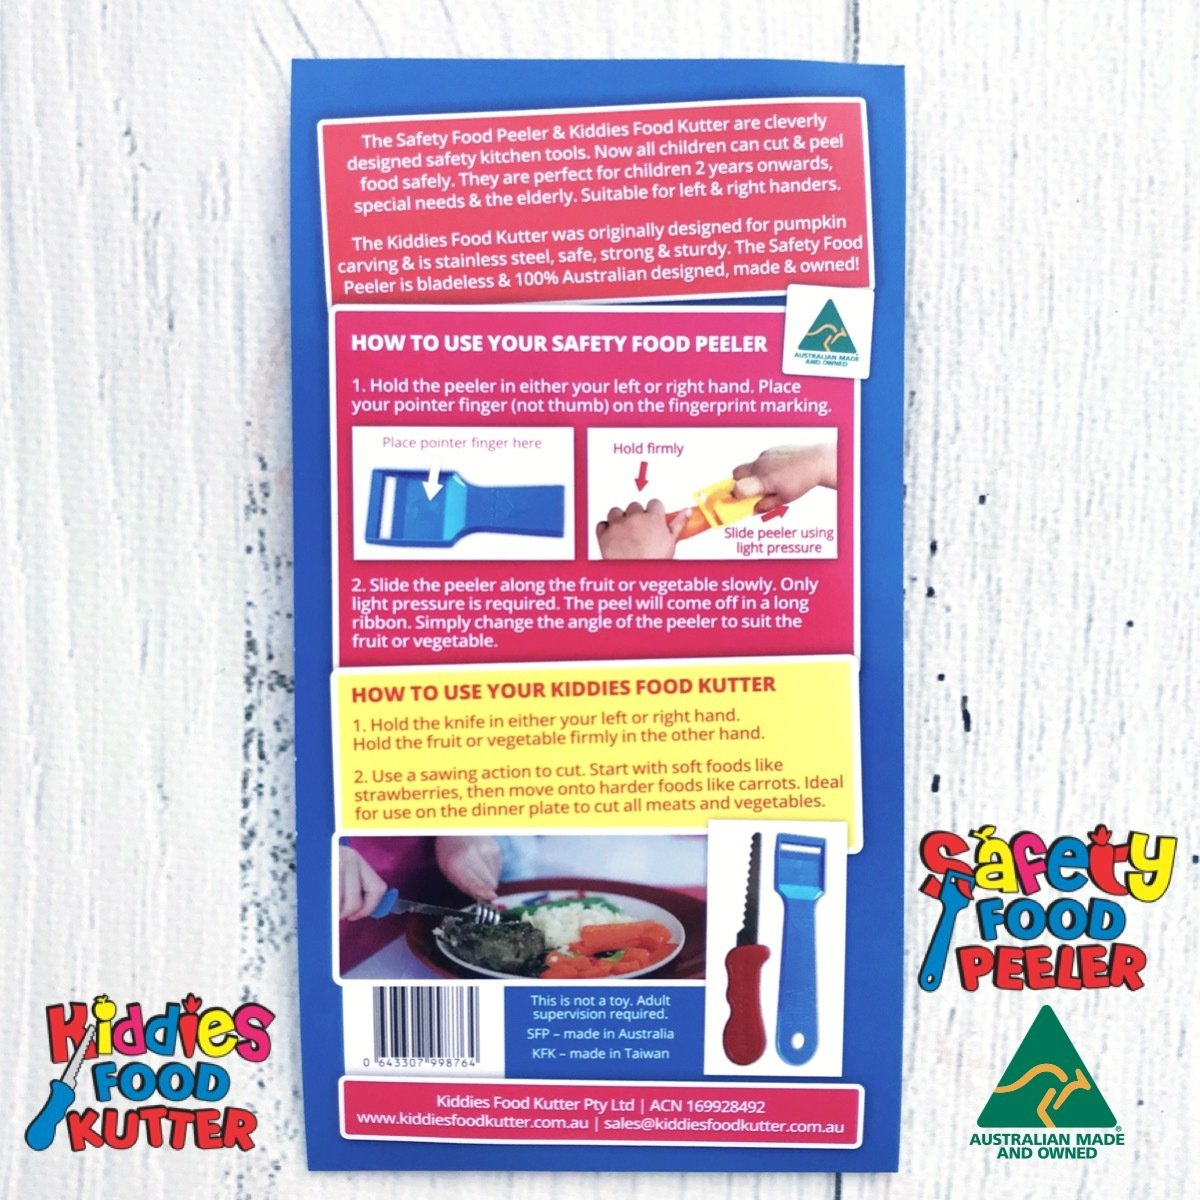 Kiddies Food Kutter & Safety Food Peeler Instructions